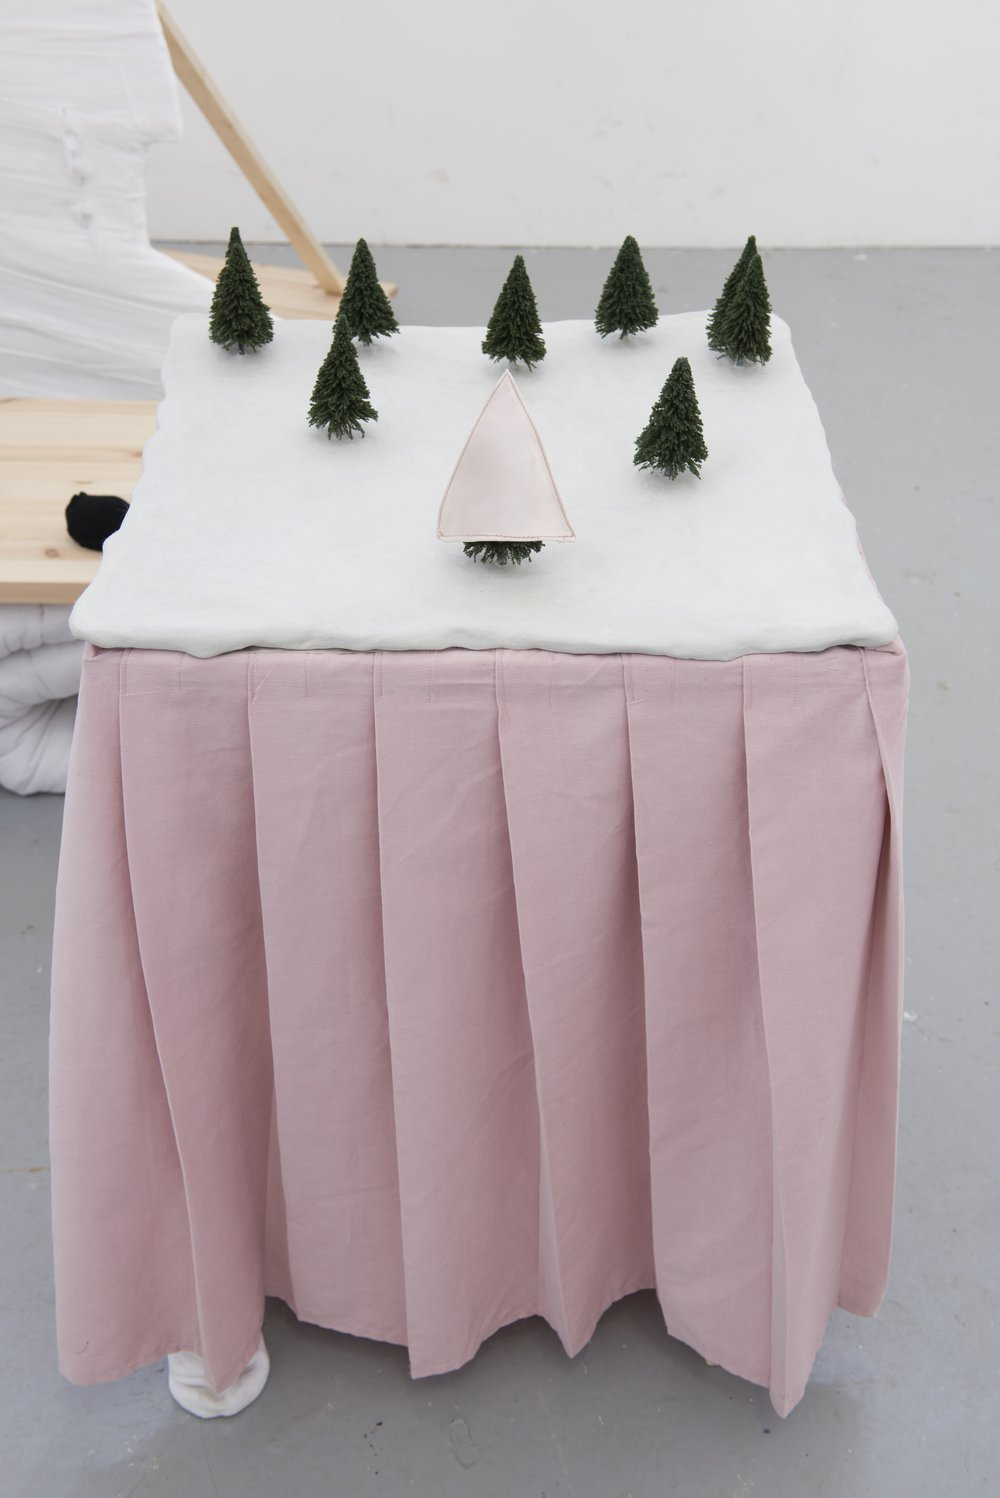 Complacent behaviour, Composition of trees on a table with a pink skirt